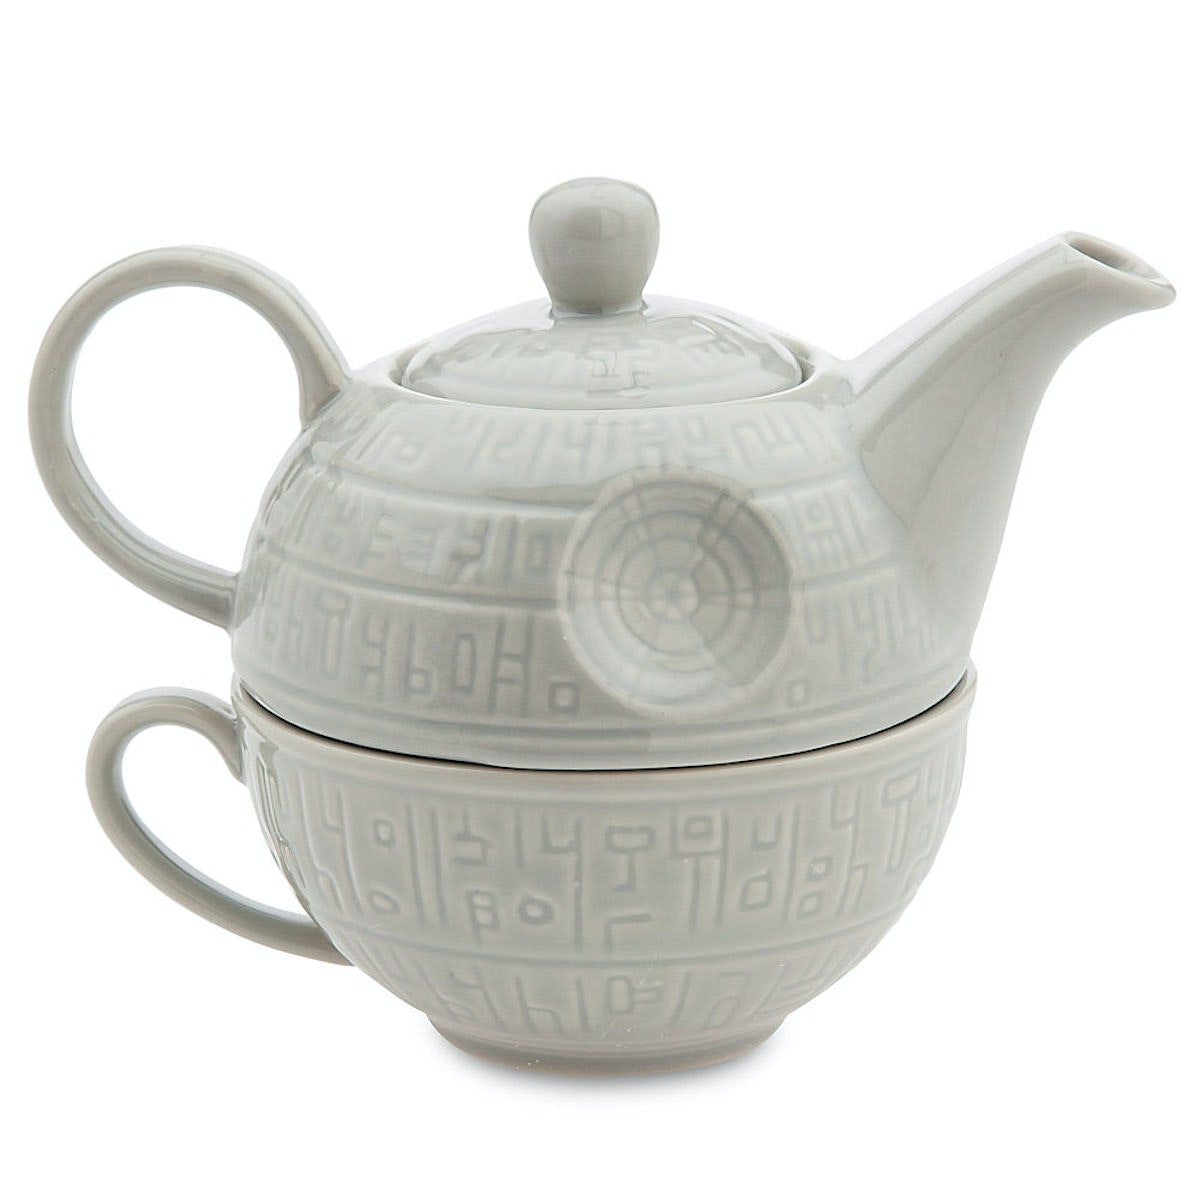 The perfect pot for serving high tea on the Death Star